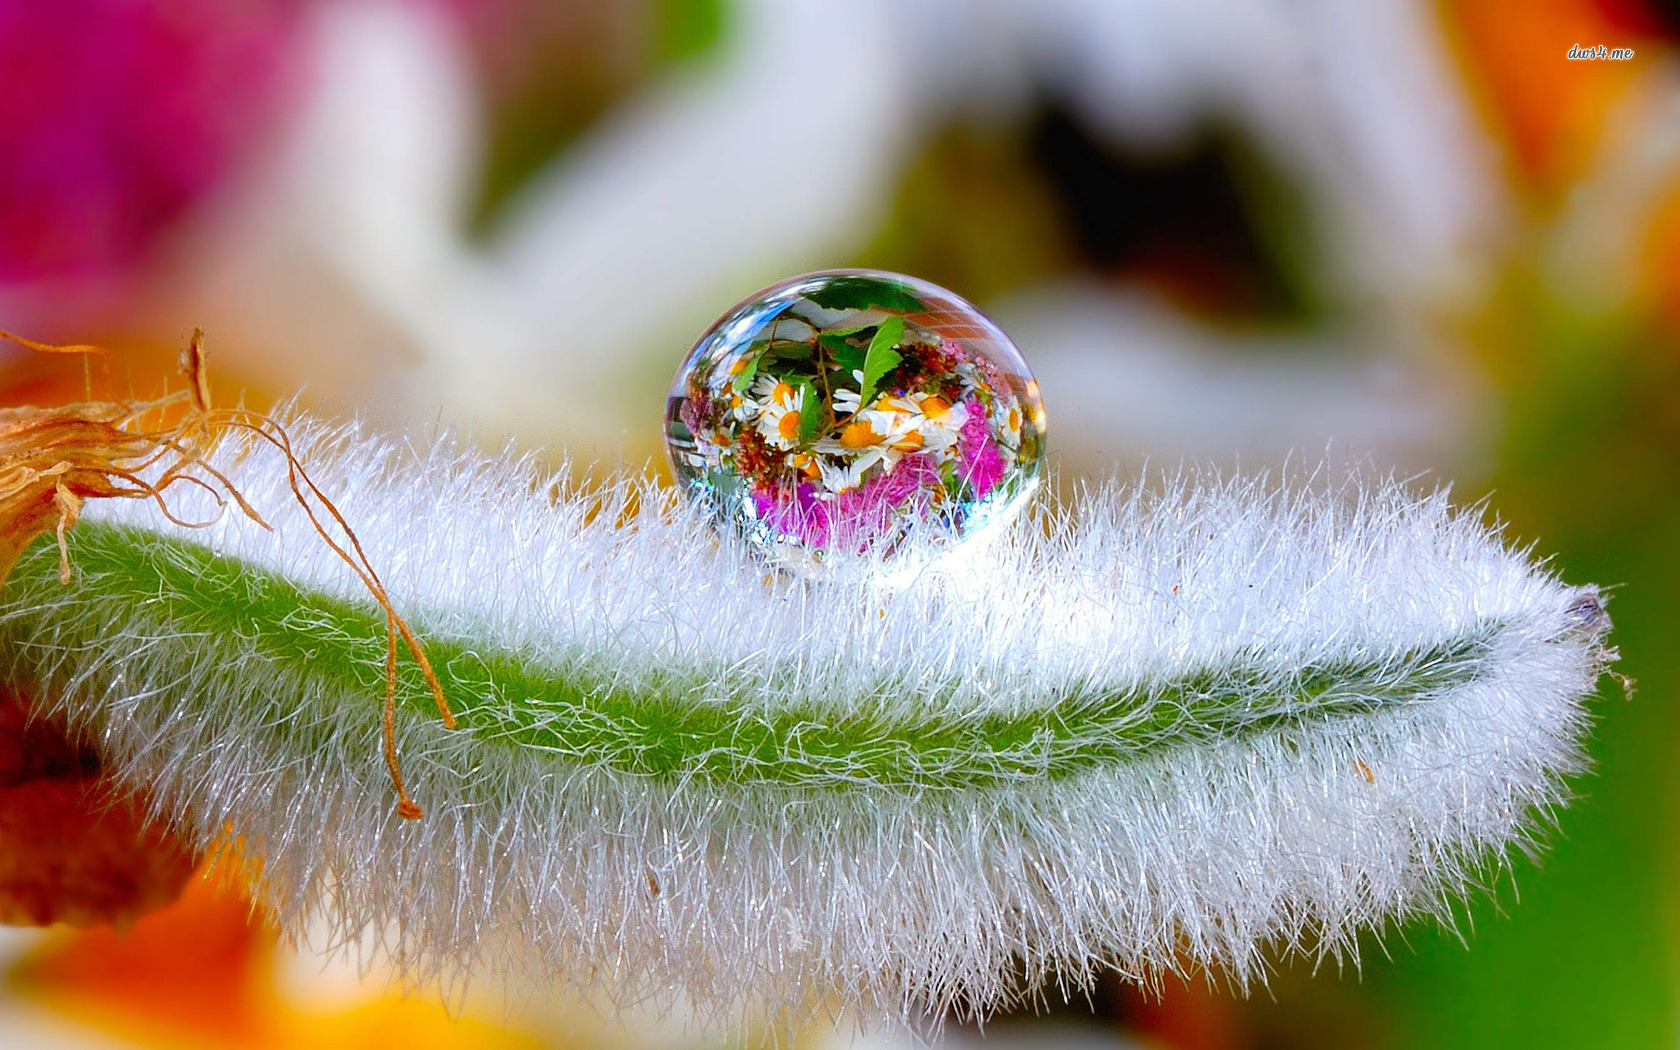 flowers in a water drop hd wallpaper | hd latest wallpapers